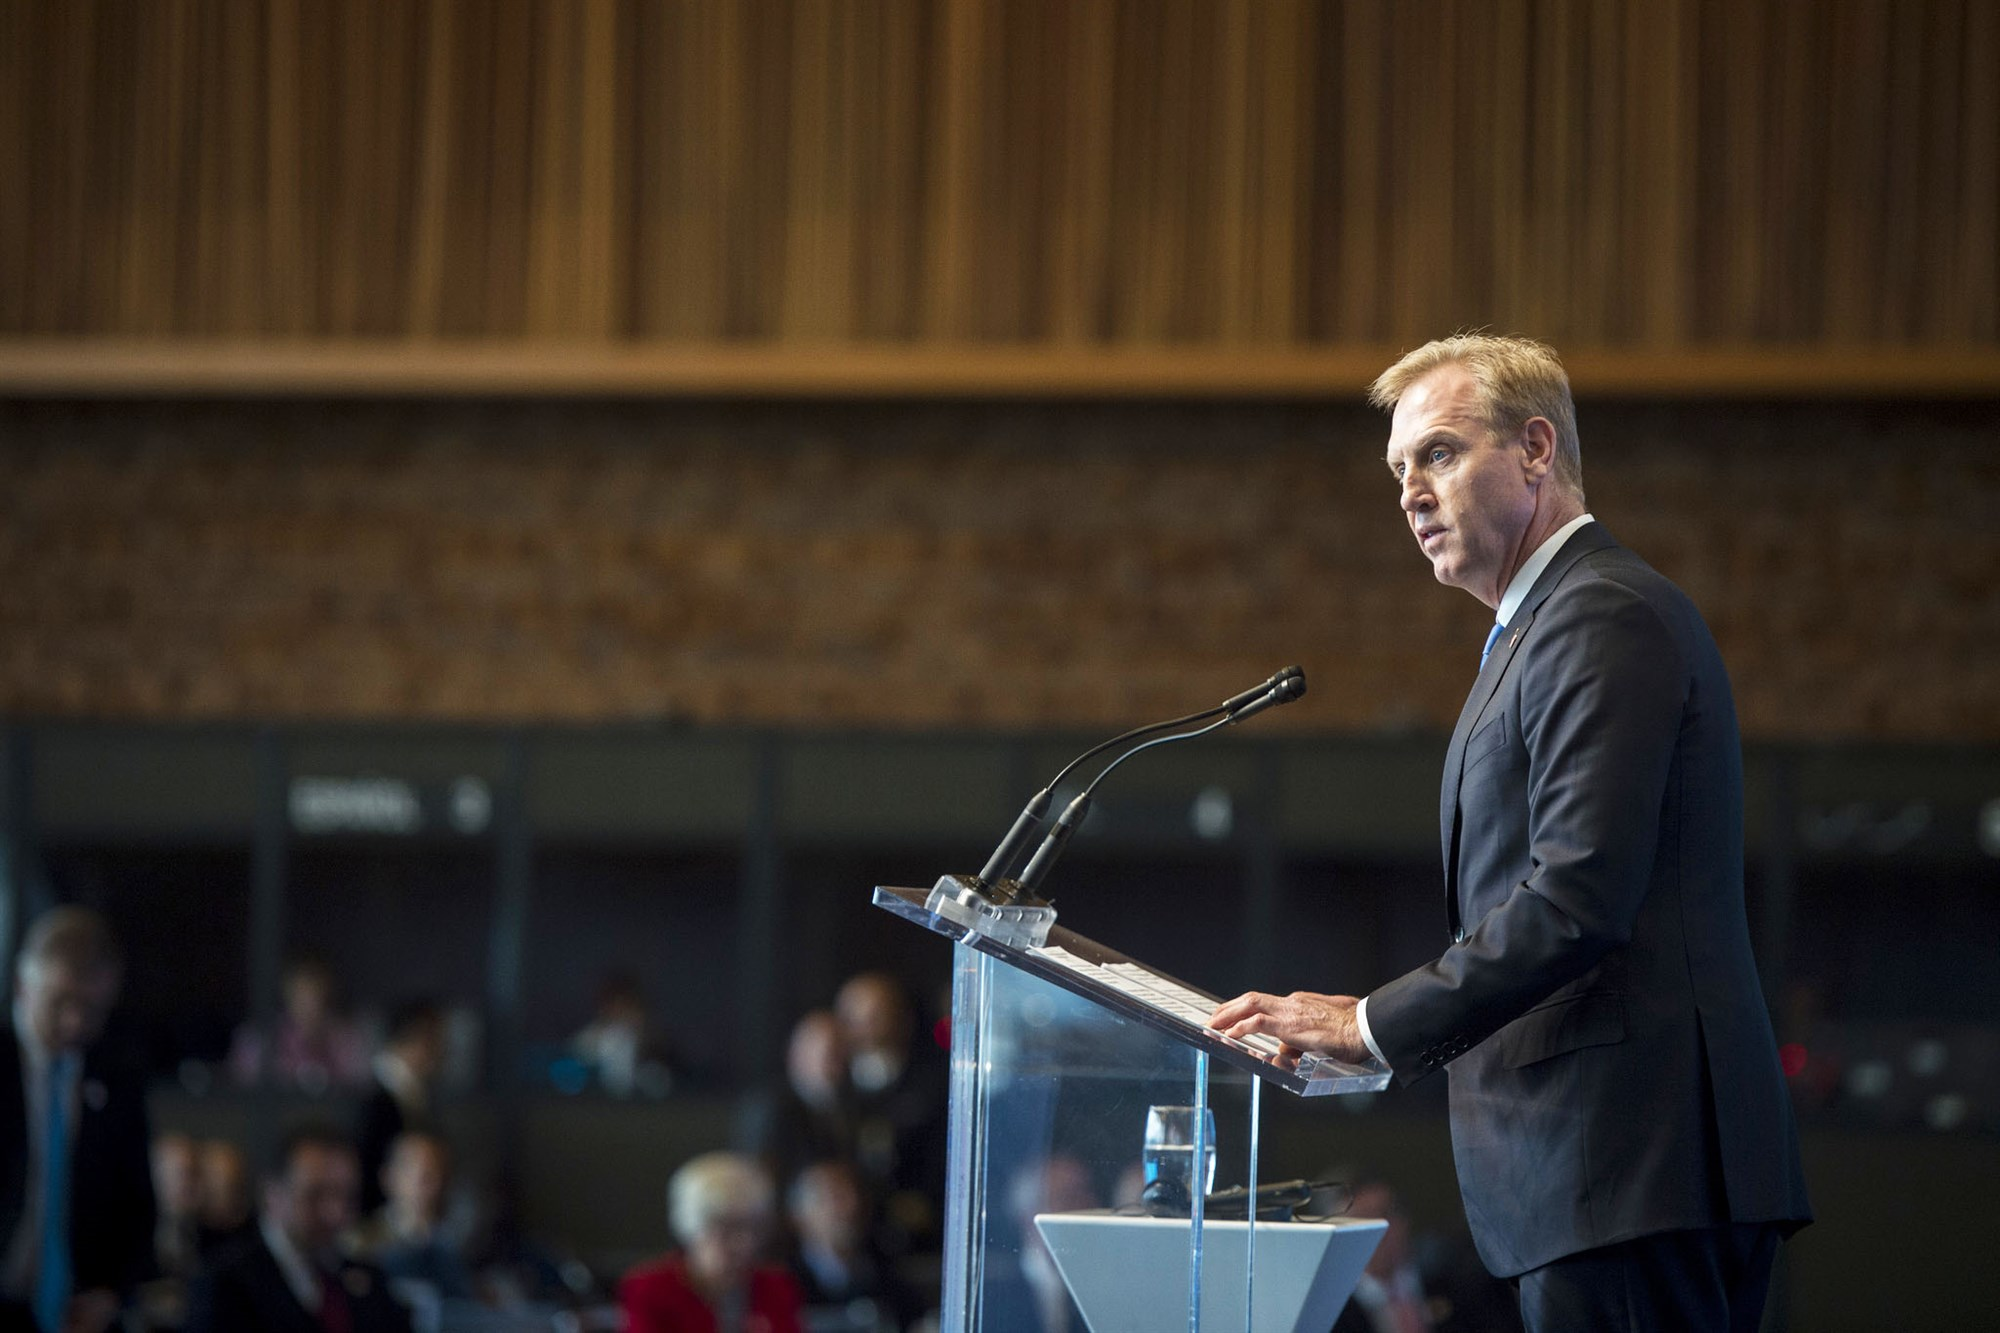 Deputy Defense Secretary Pat Shanahan speaks during the U.N. Peacekeeping Defense Ministerial conference in Vancouver, British Columbia, Nov. 15, 2017. DoD photo by Air Force Tech. Sgt. Brigitte N. Brantley